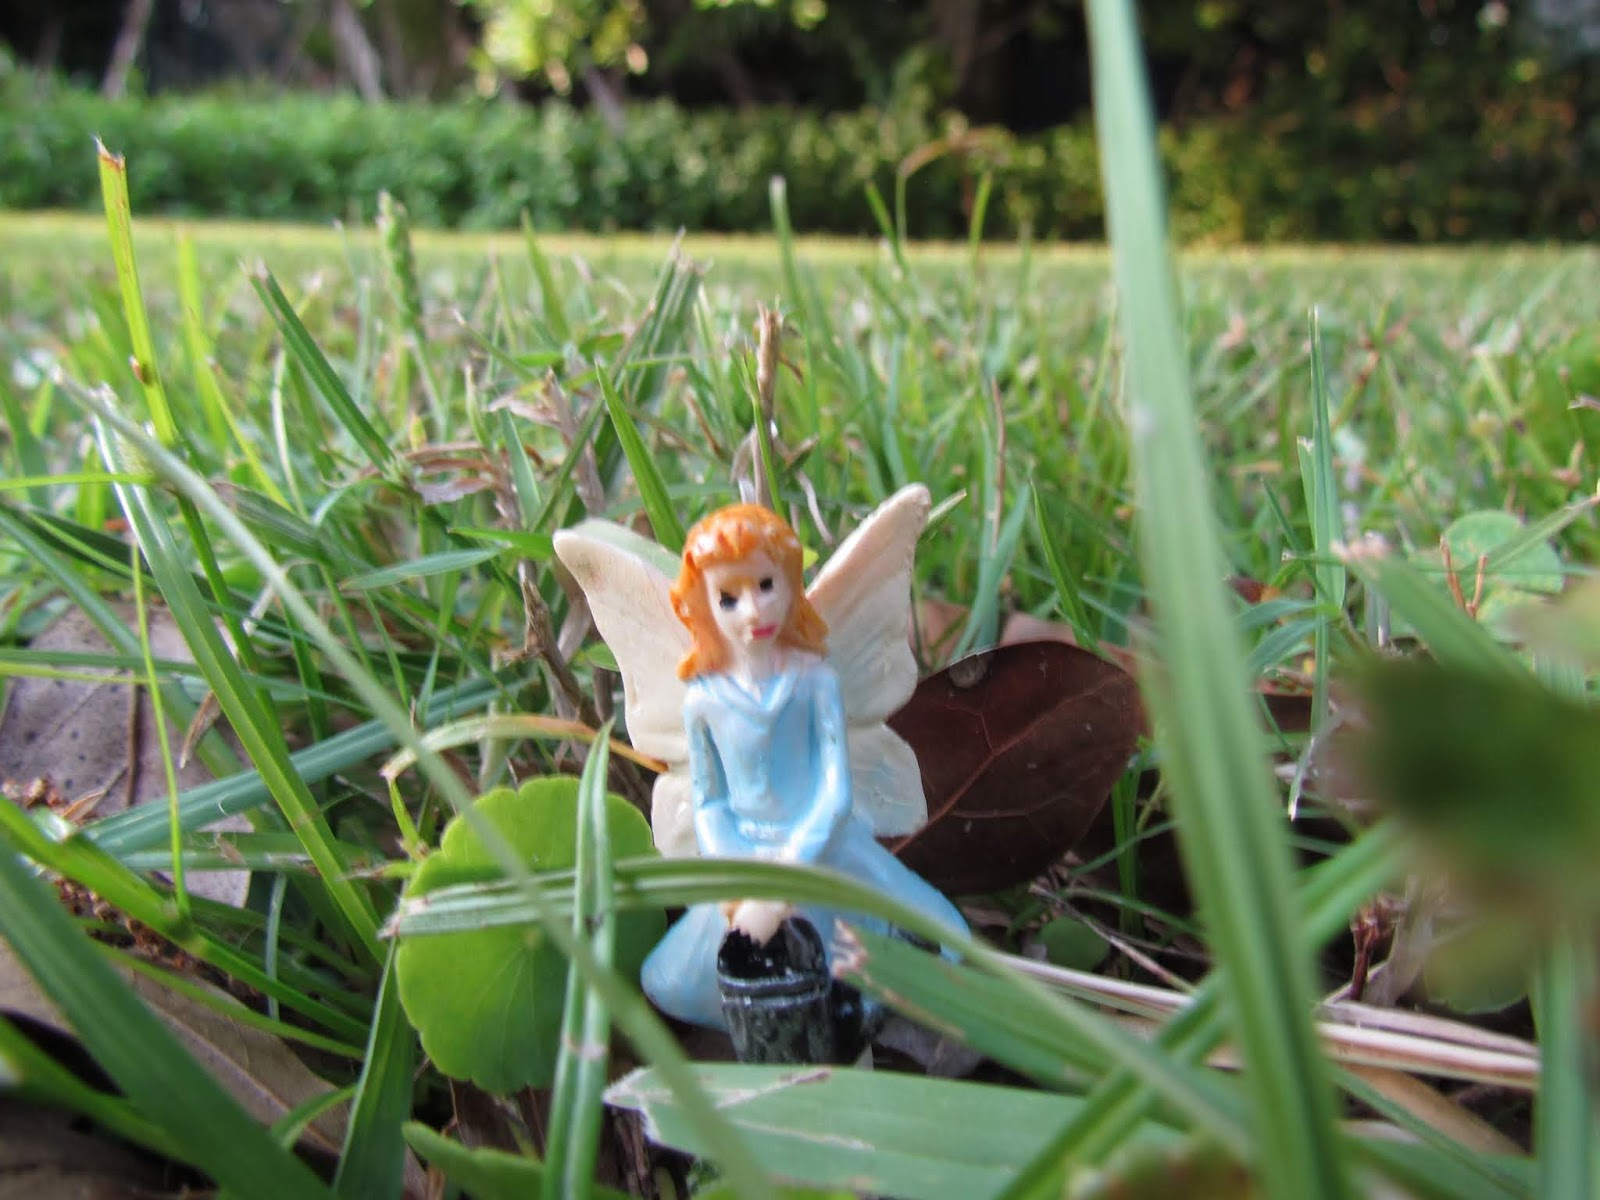 A Fairy Earthing in the Elements of Nature in the Forest Floor on Green Grass in Summer